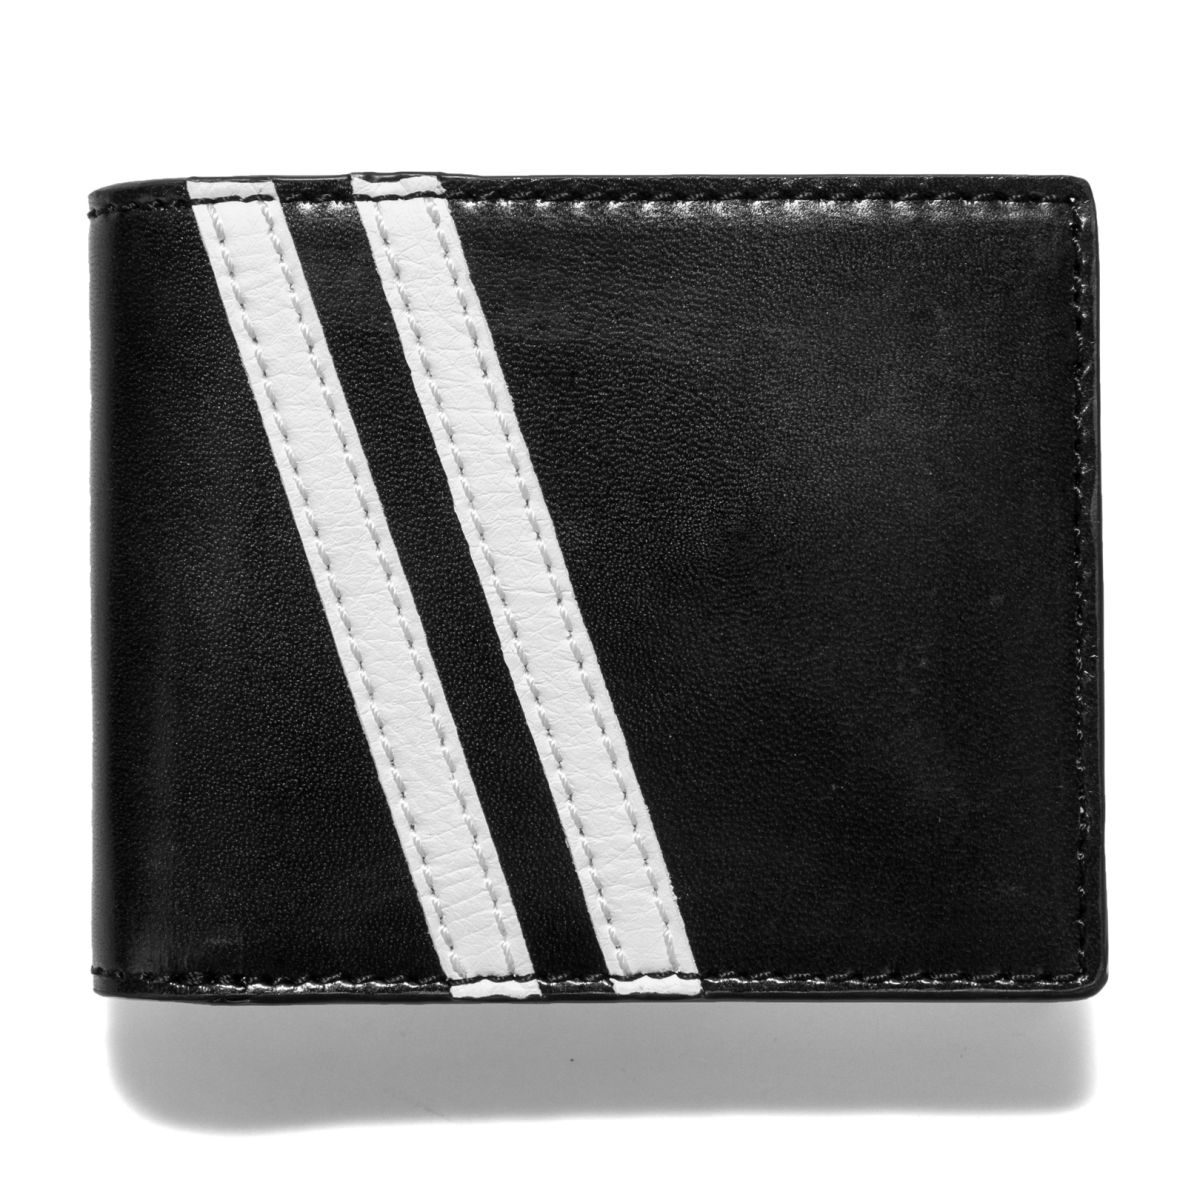 J.FOLD Roadster Leather Wallet - Black/Grey